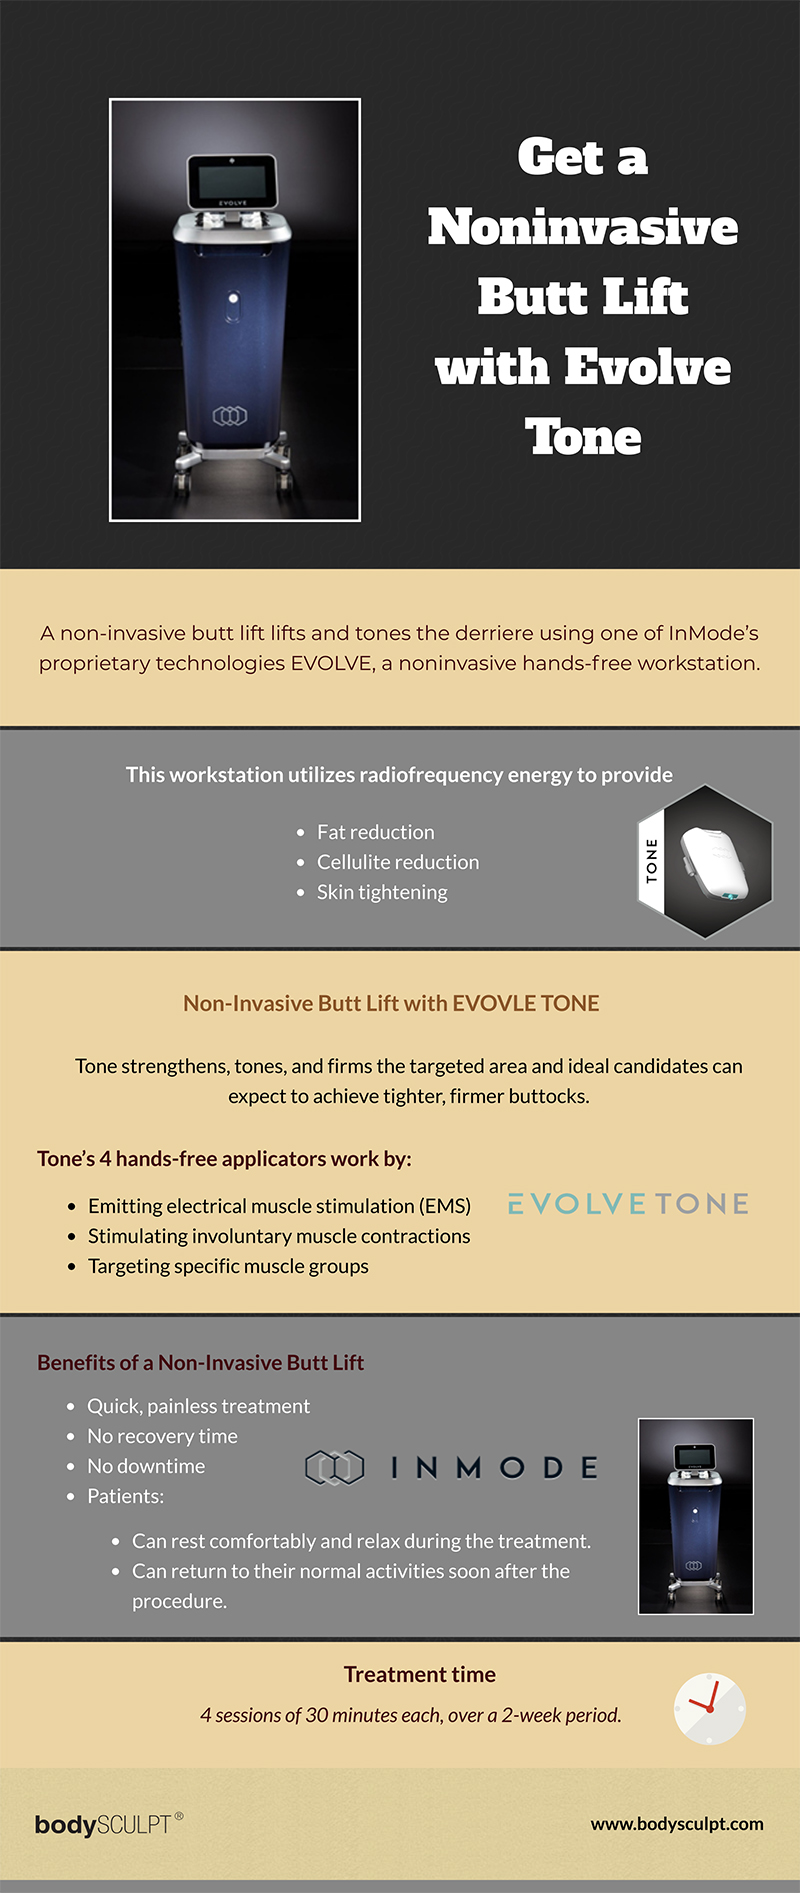 Get a Noninvasive Butt Lift with Evolve Tone